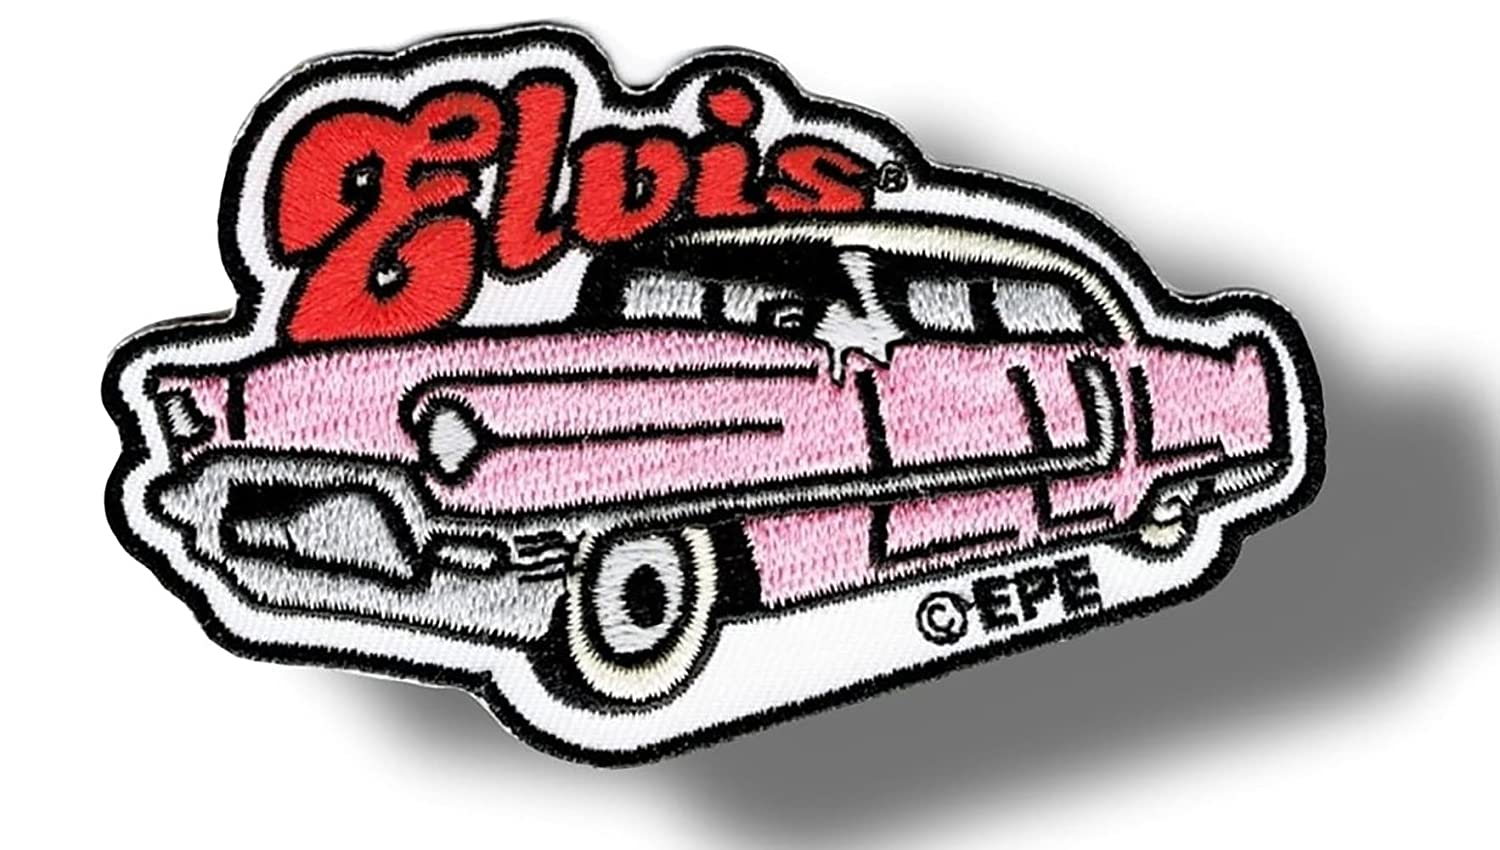 White 3.75 Inch Rectangular Simple Basic 1950s Crusin Caddy Elvis Design Iron On Embroidered Applique Patch {Black /& Red Colors} Single Count Custom and Unique